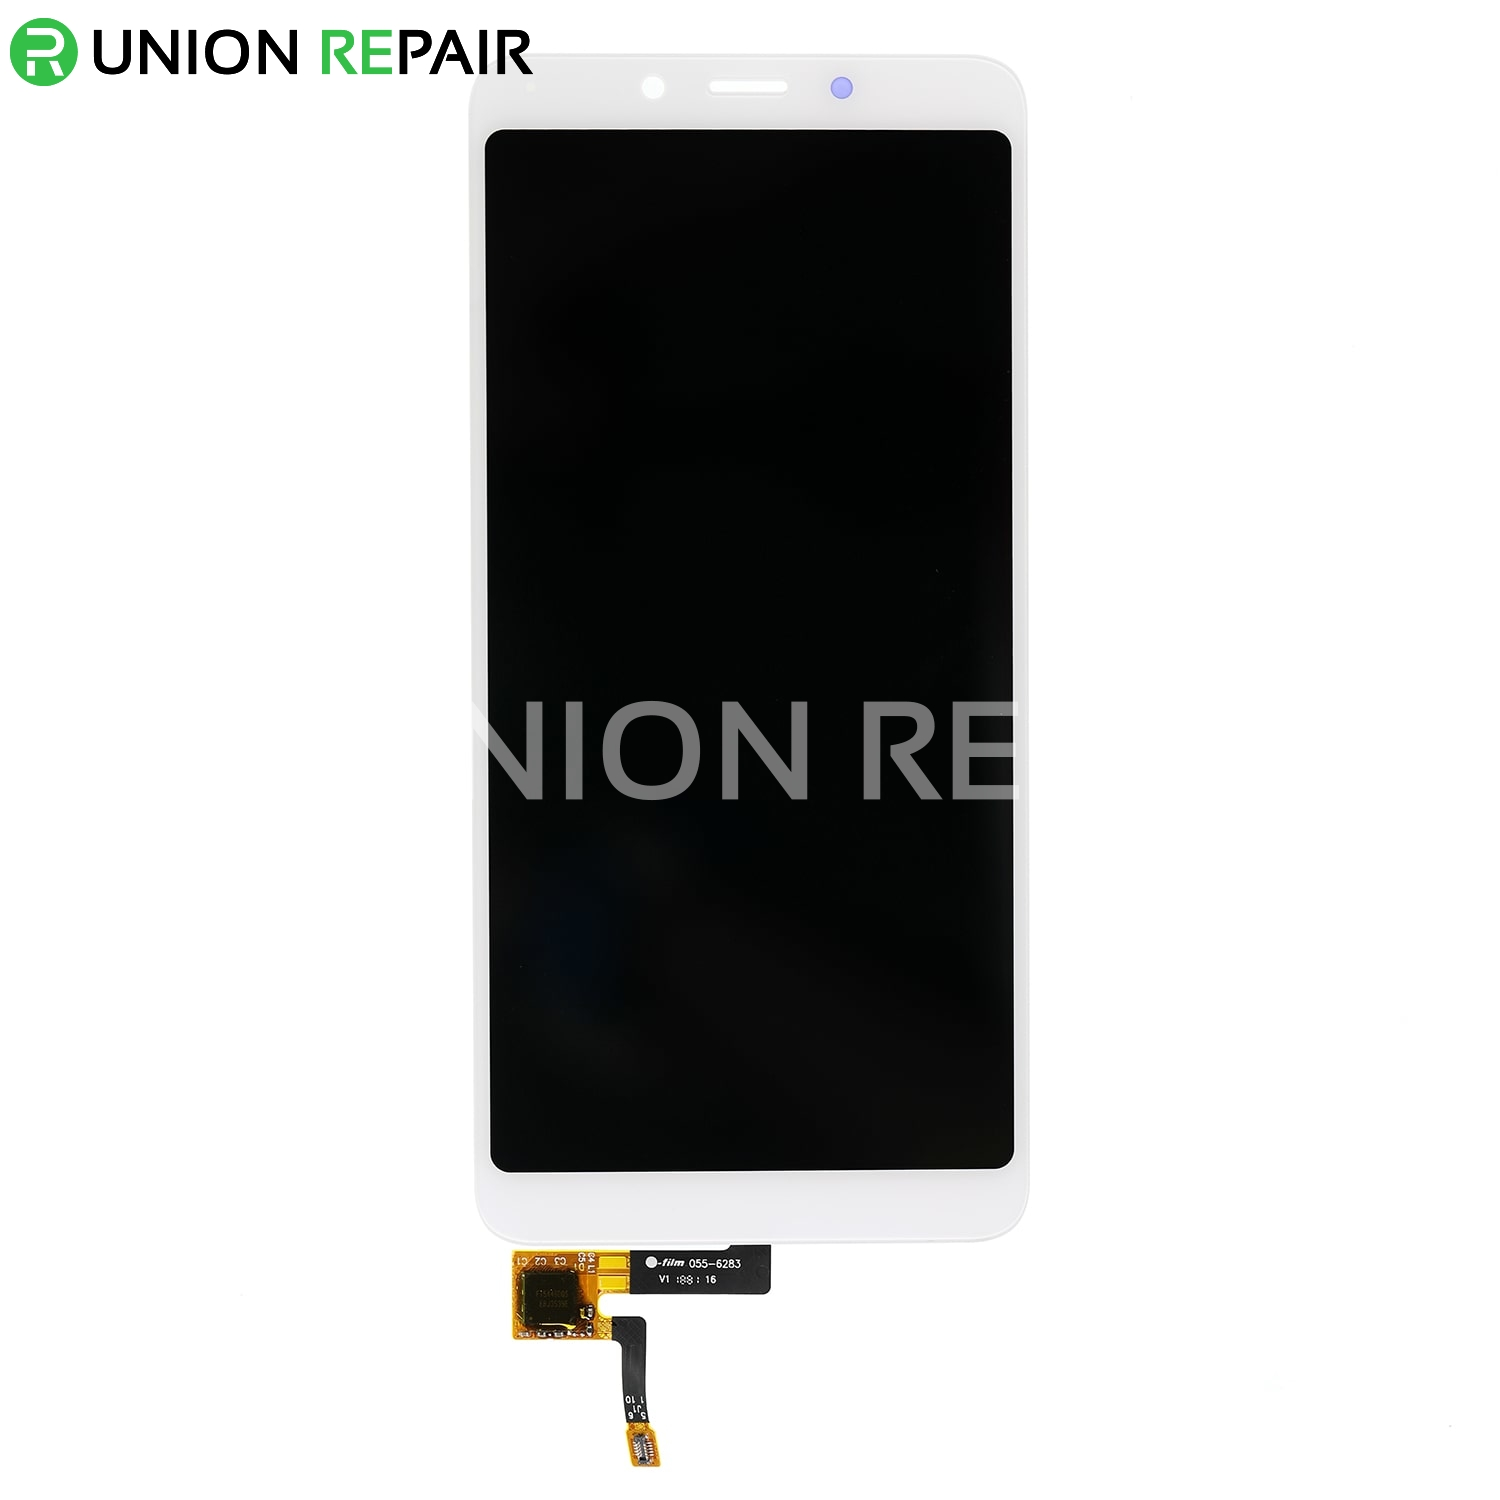 Replacement for RedMi 6 LCD Screen Digitizer - WhiteReplacement for RedMi 6 LCD Screen Digitizer - White